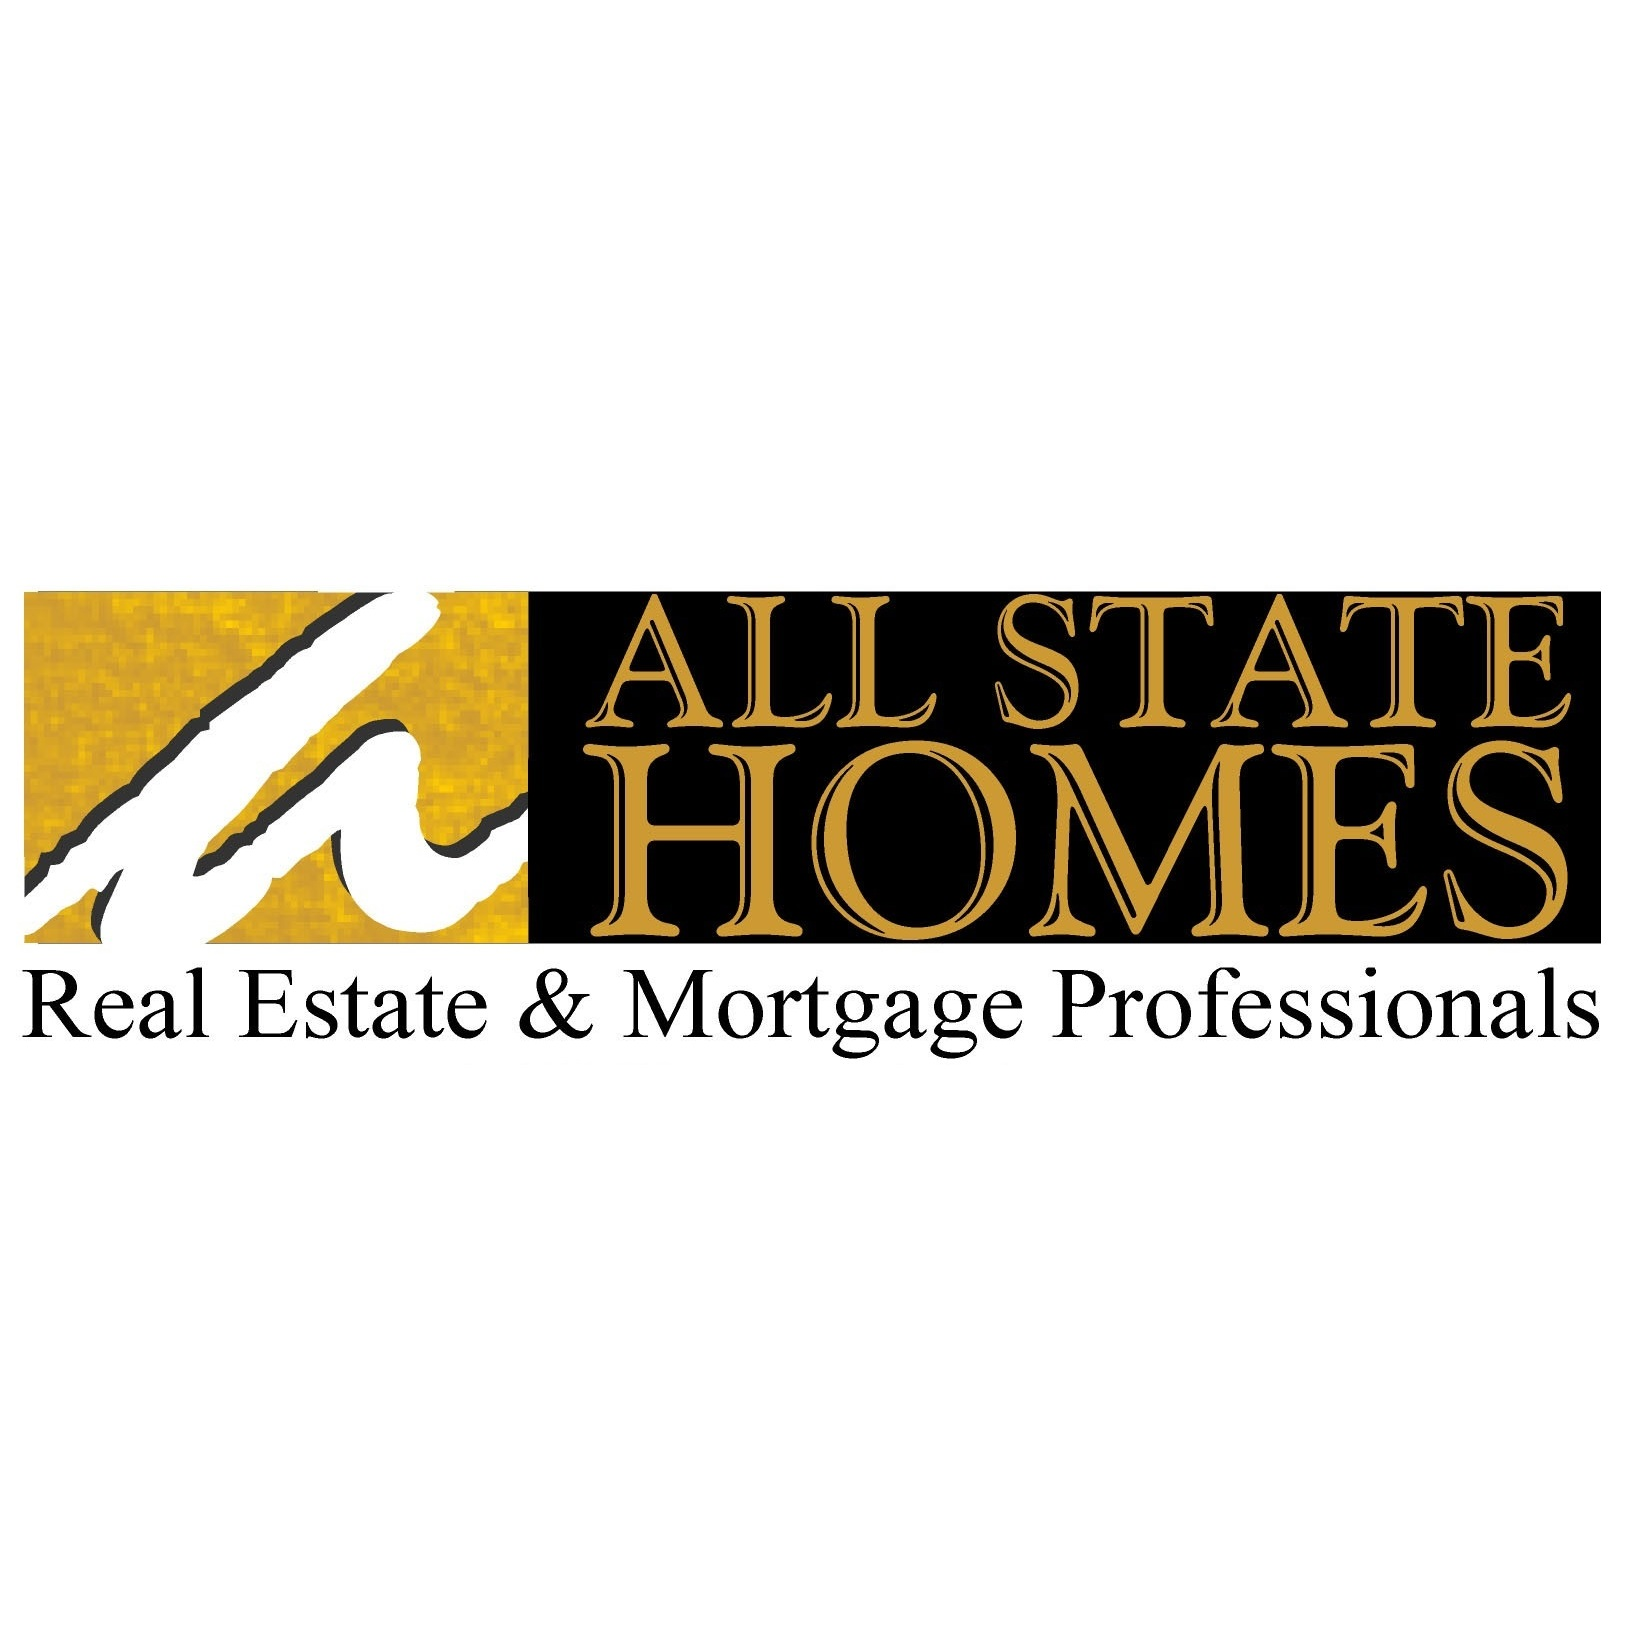 All State Homes Real Estate and Mortgage Professionals